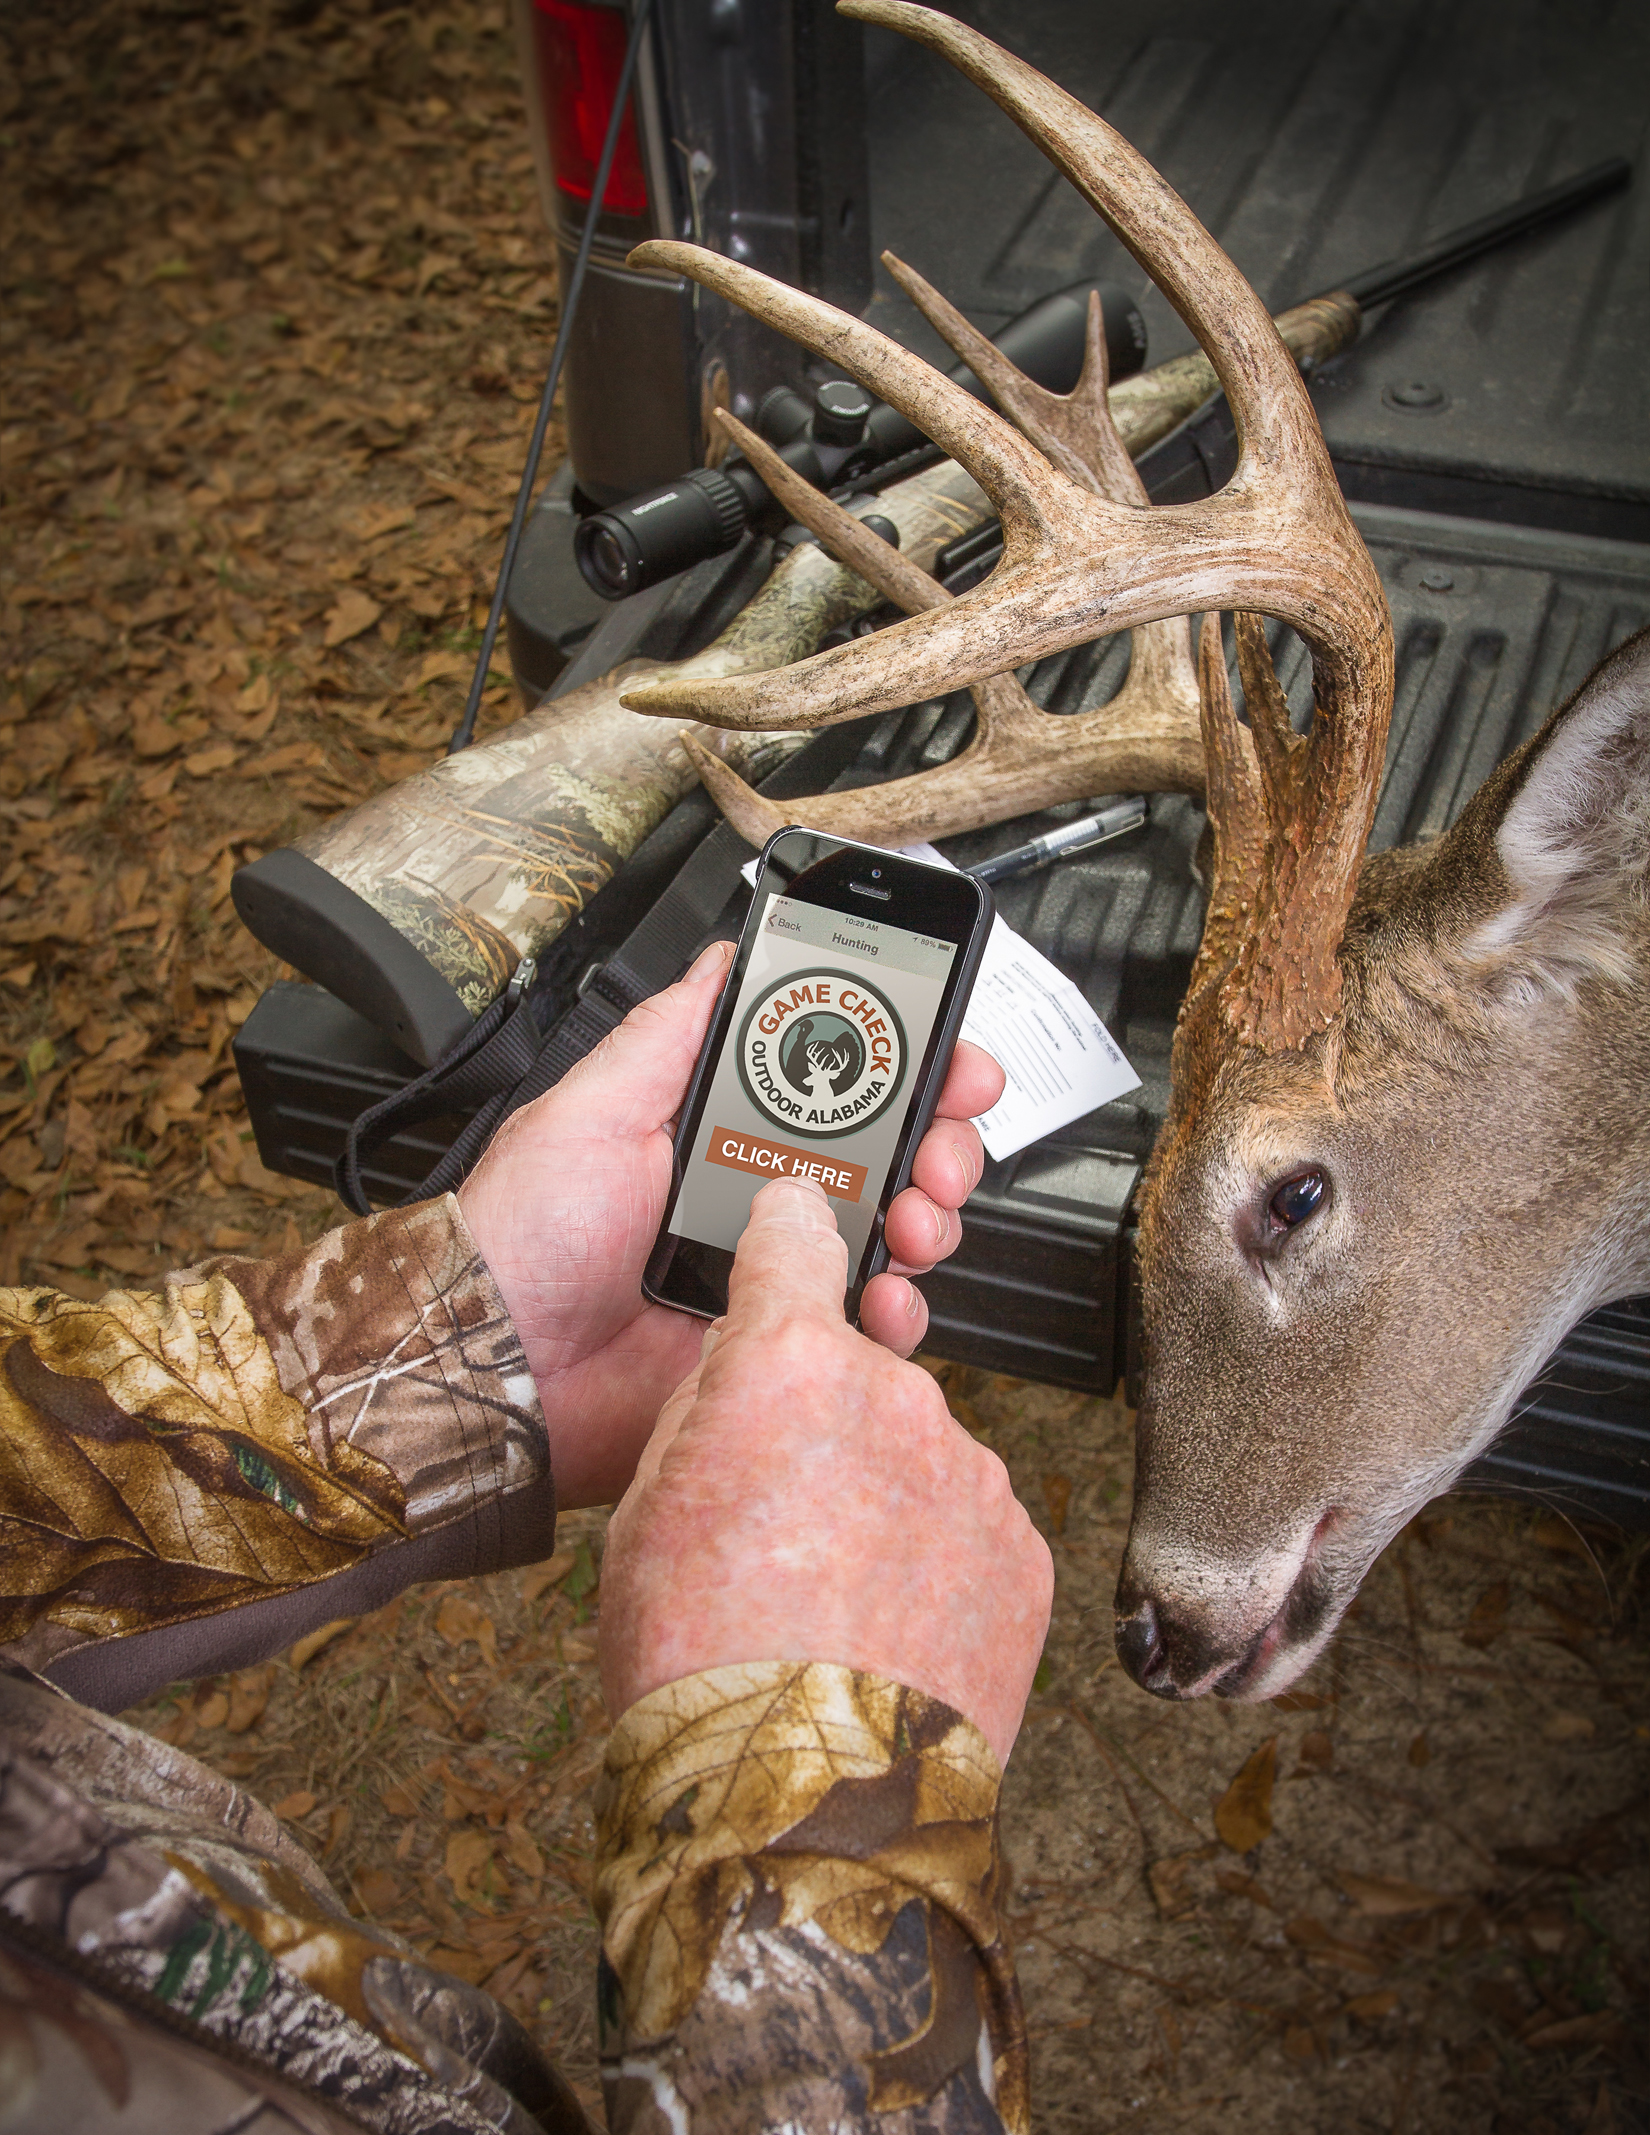 Upcoming hunting season significantly different from seasons past